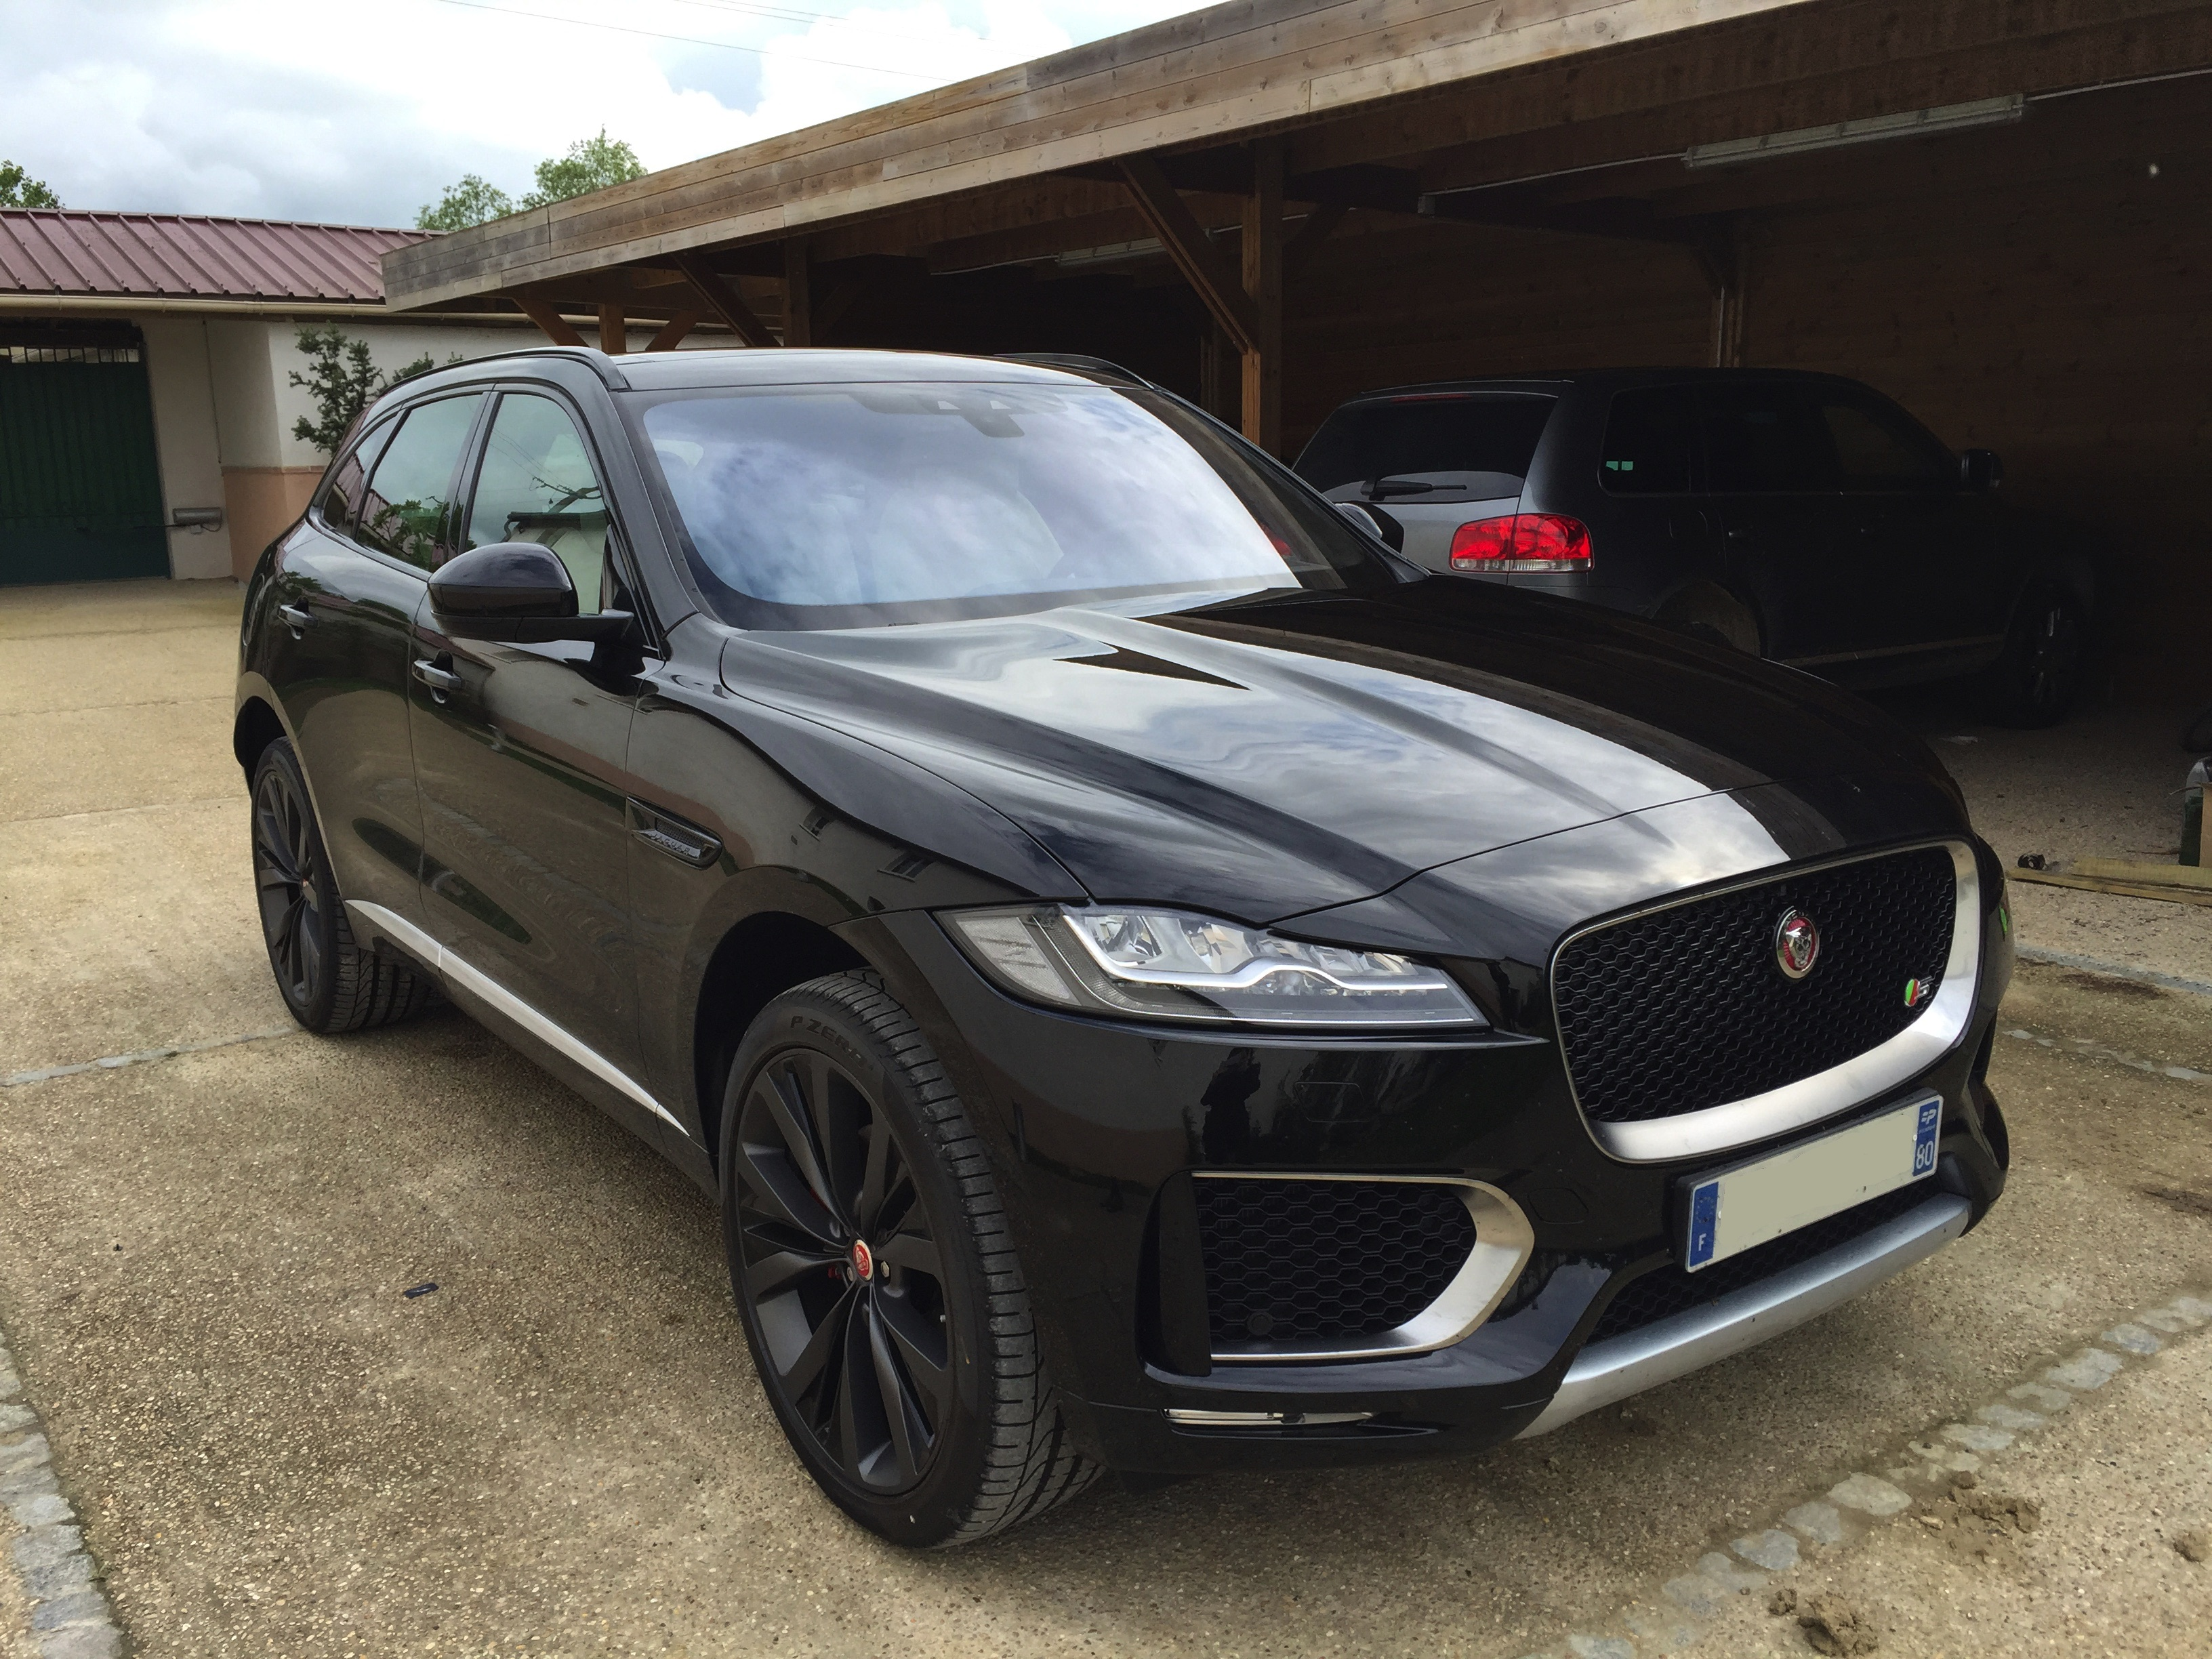 jaguar f pace v6 3 0d 300ch premi re edition 4x4 bva8 car fever. Black Bedroom Furniture Sets. Home Design Ideas